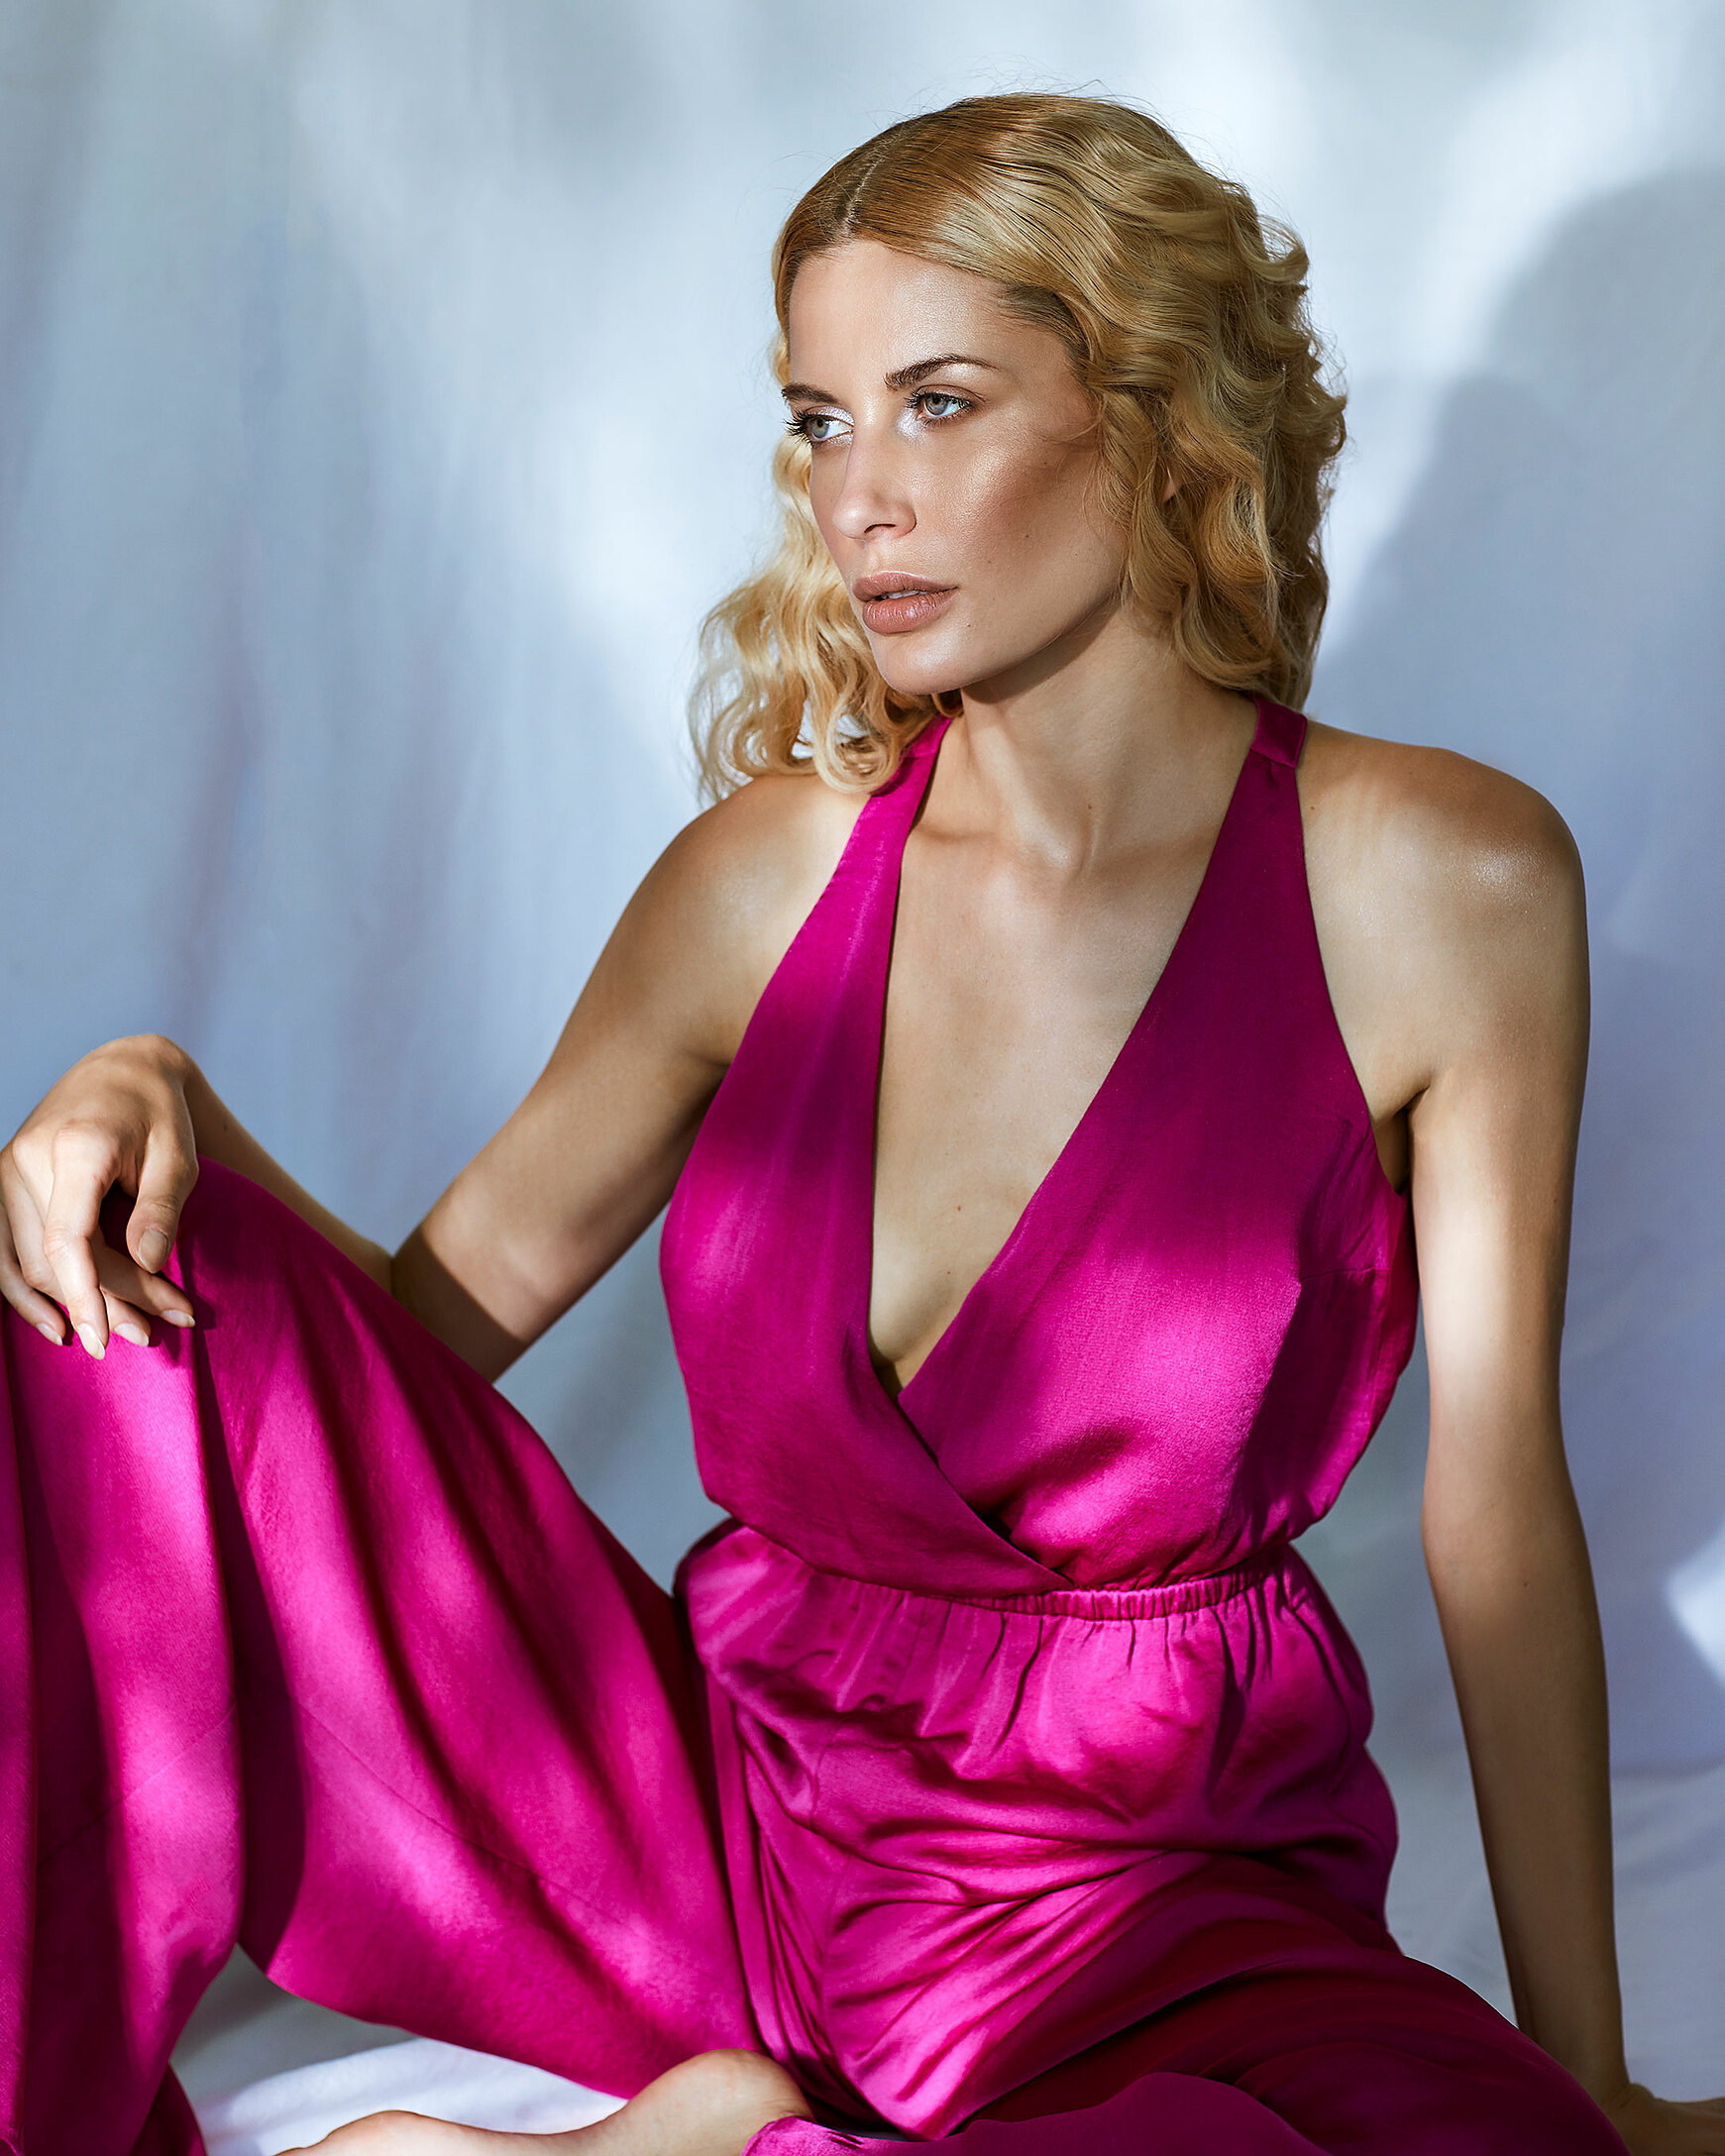 A female model with blonde curly hair sits on the ground with a pink jumpsuit.